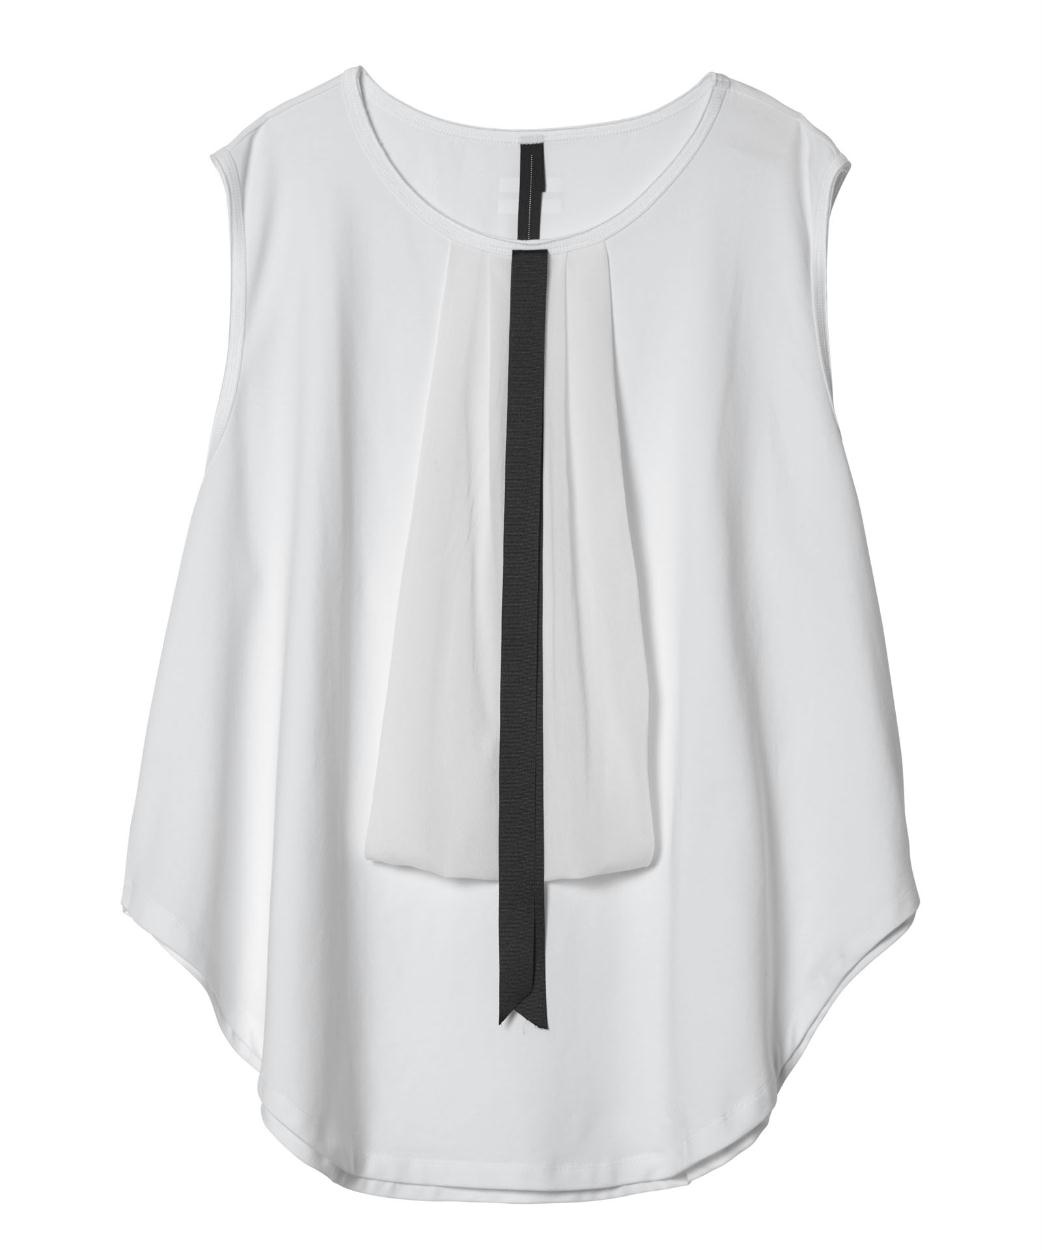 10Days White Oversized Top 20.452.9103/8